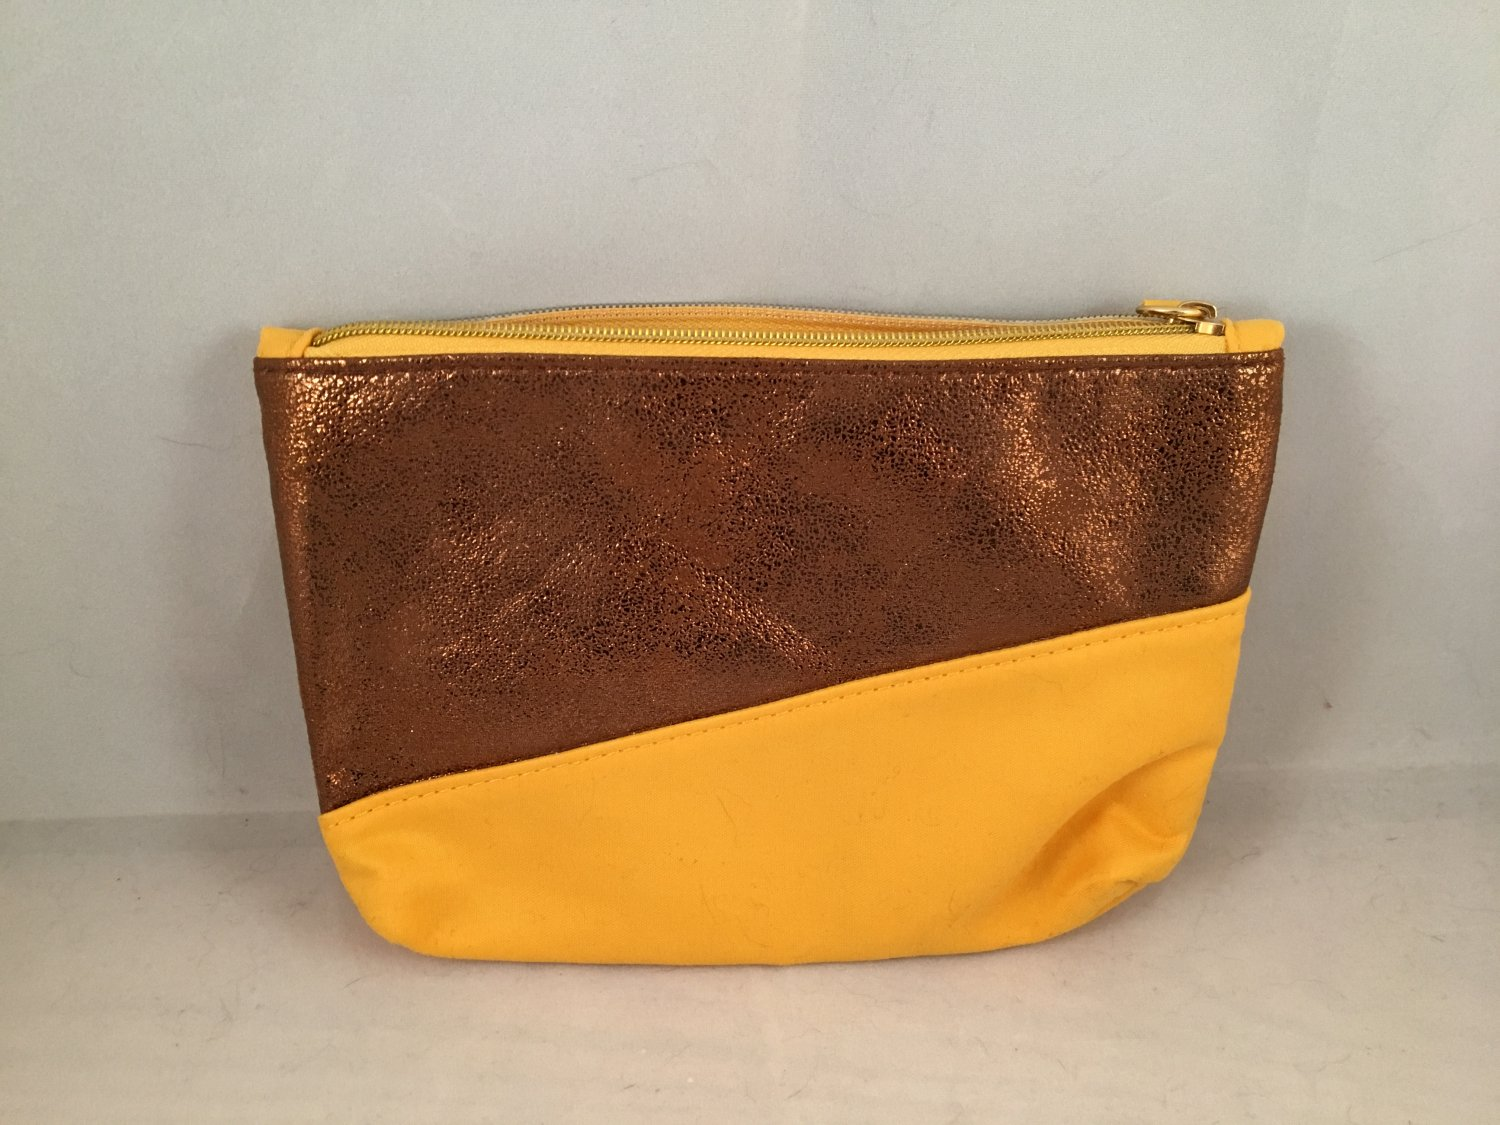 Ipsy MyGlam Glam Bag November 2017 All You Cosmetic case purse Yellow Bronze